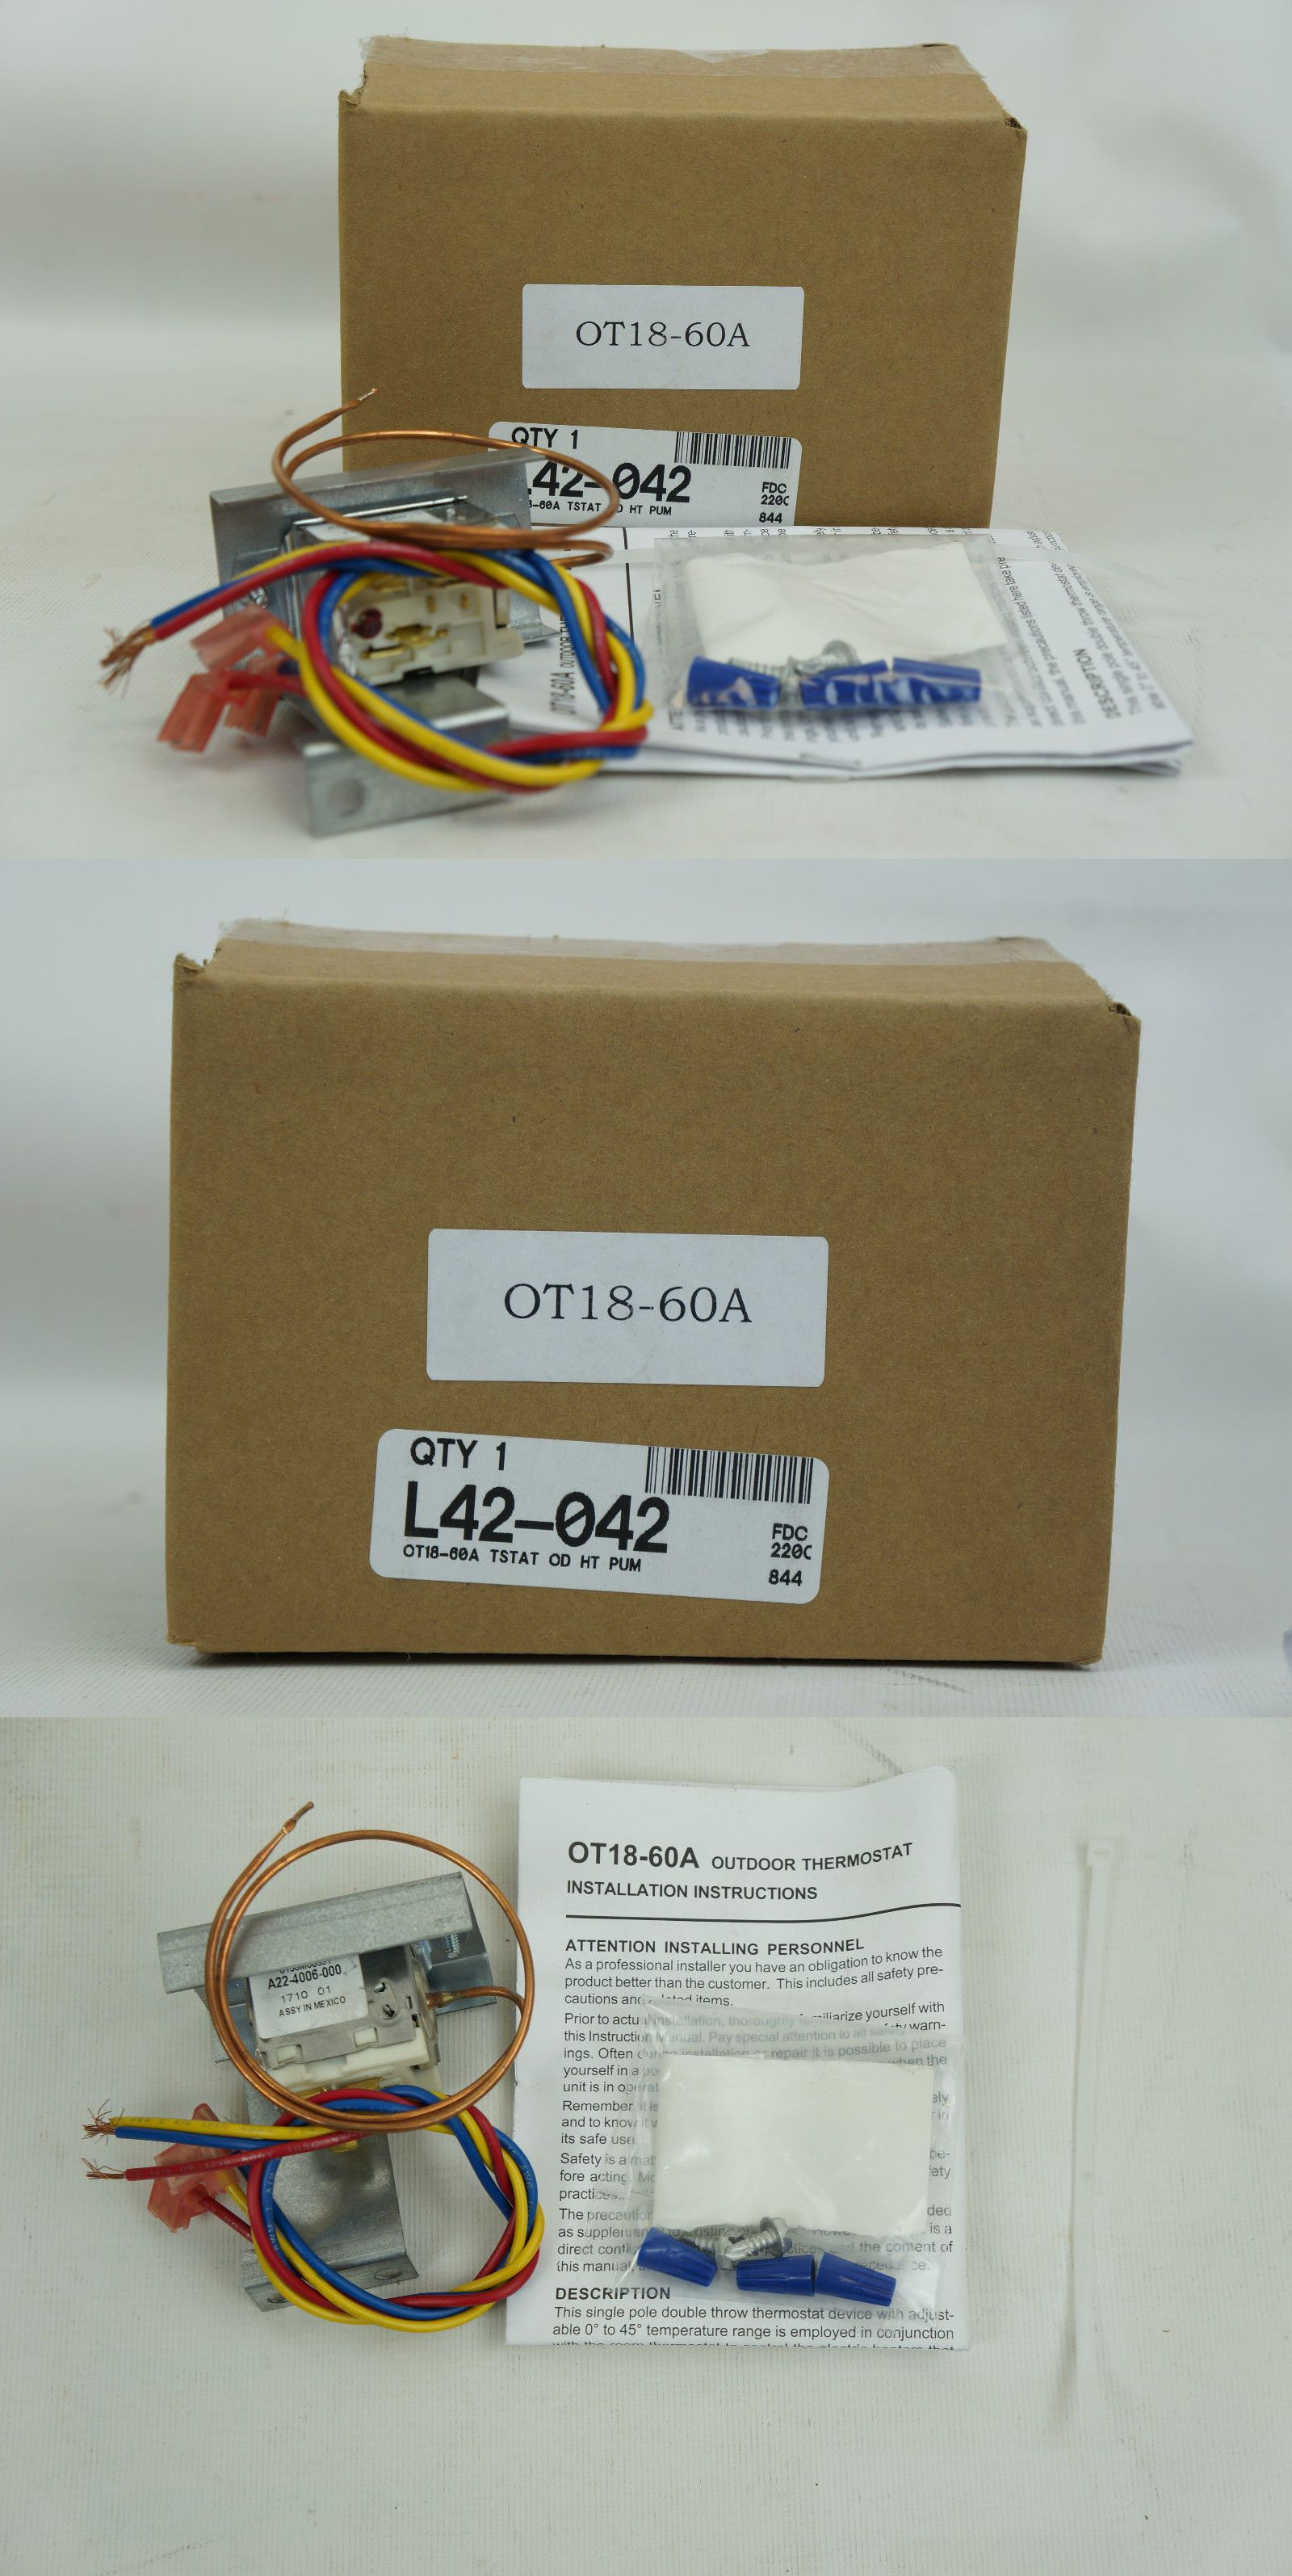 Other thermostats 41988 new goodman ot18 60a outdoor thermostat other thermostats 41988 new goodman ot18 60a outdoor thermostat for heat pump sciox Gallery